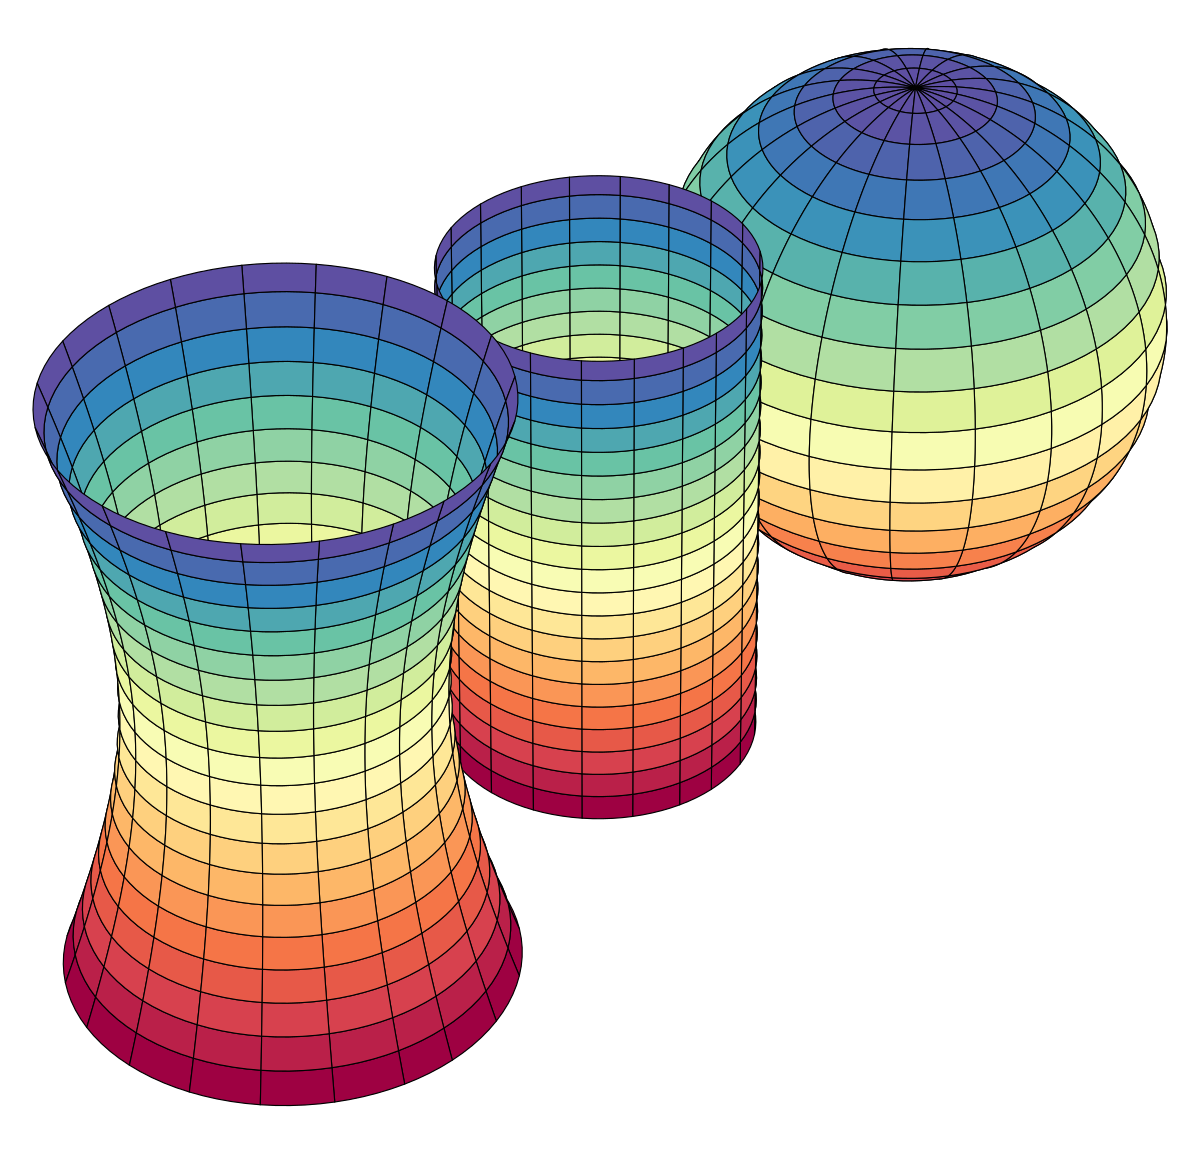 Geometry clipart two dimensional. Gaussian curvature wikipedia